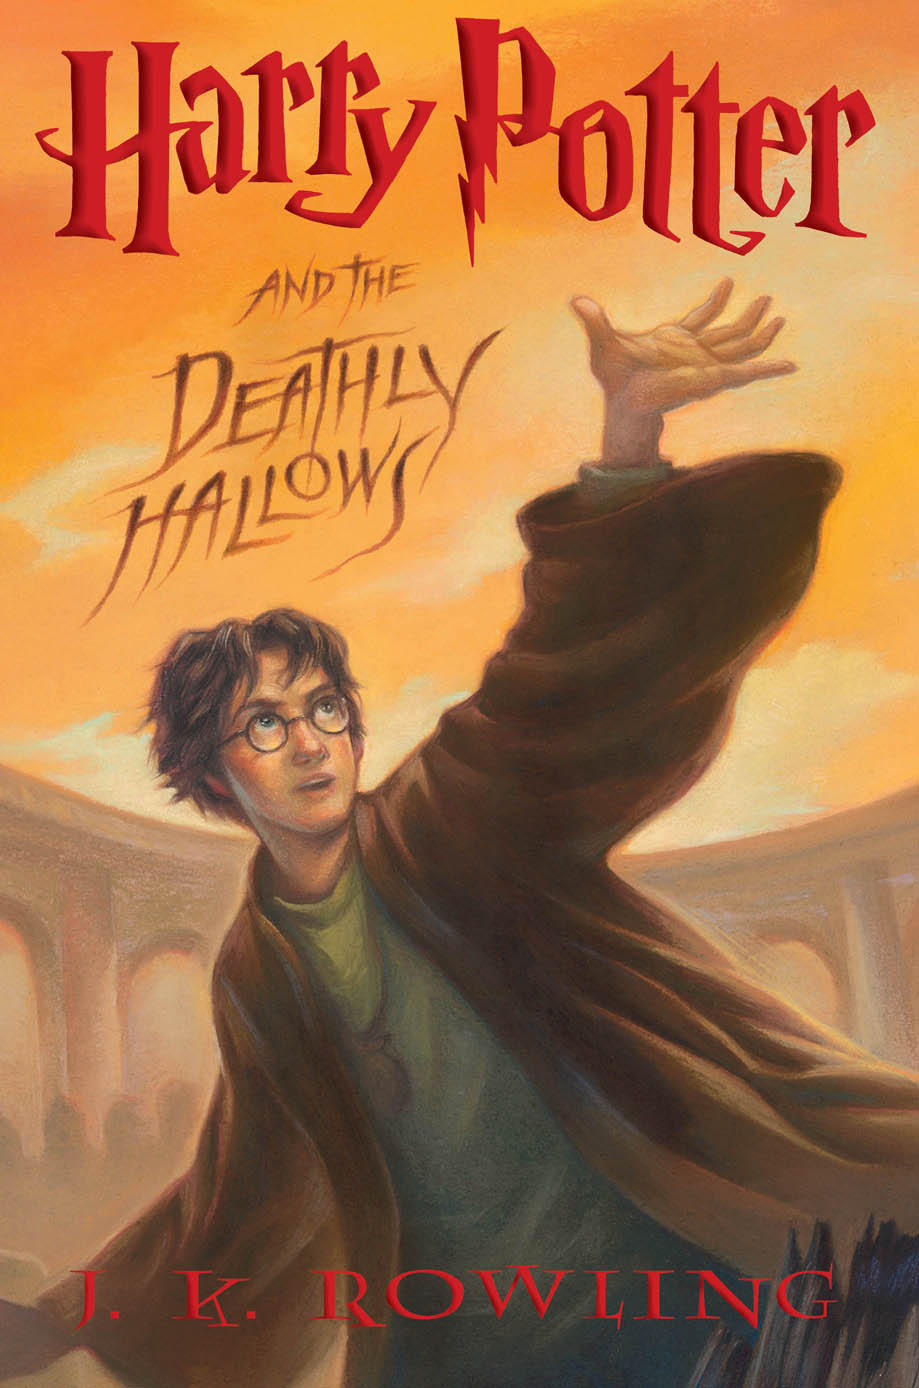 HArry POtter and the Deathly Halows